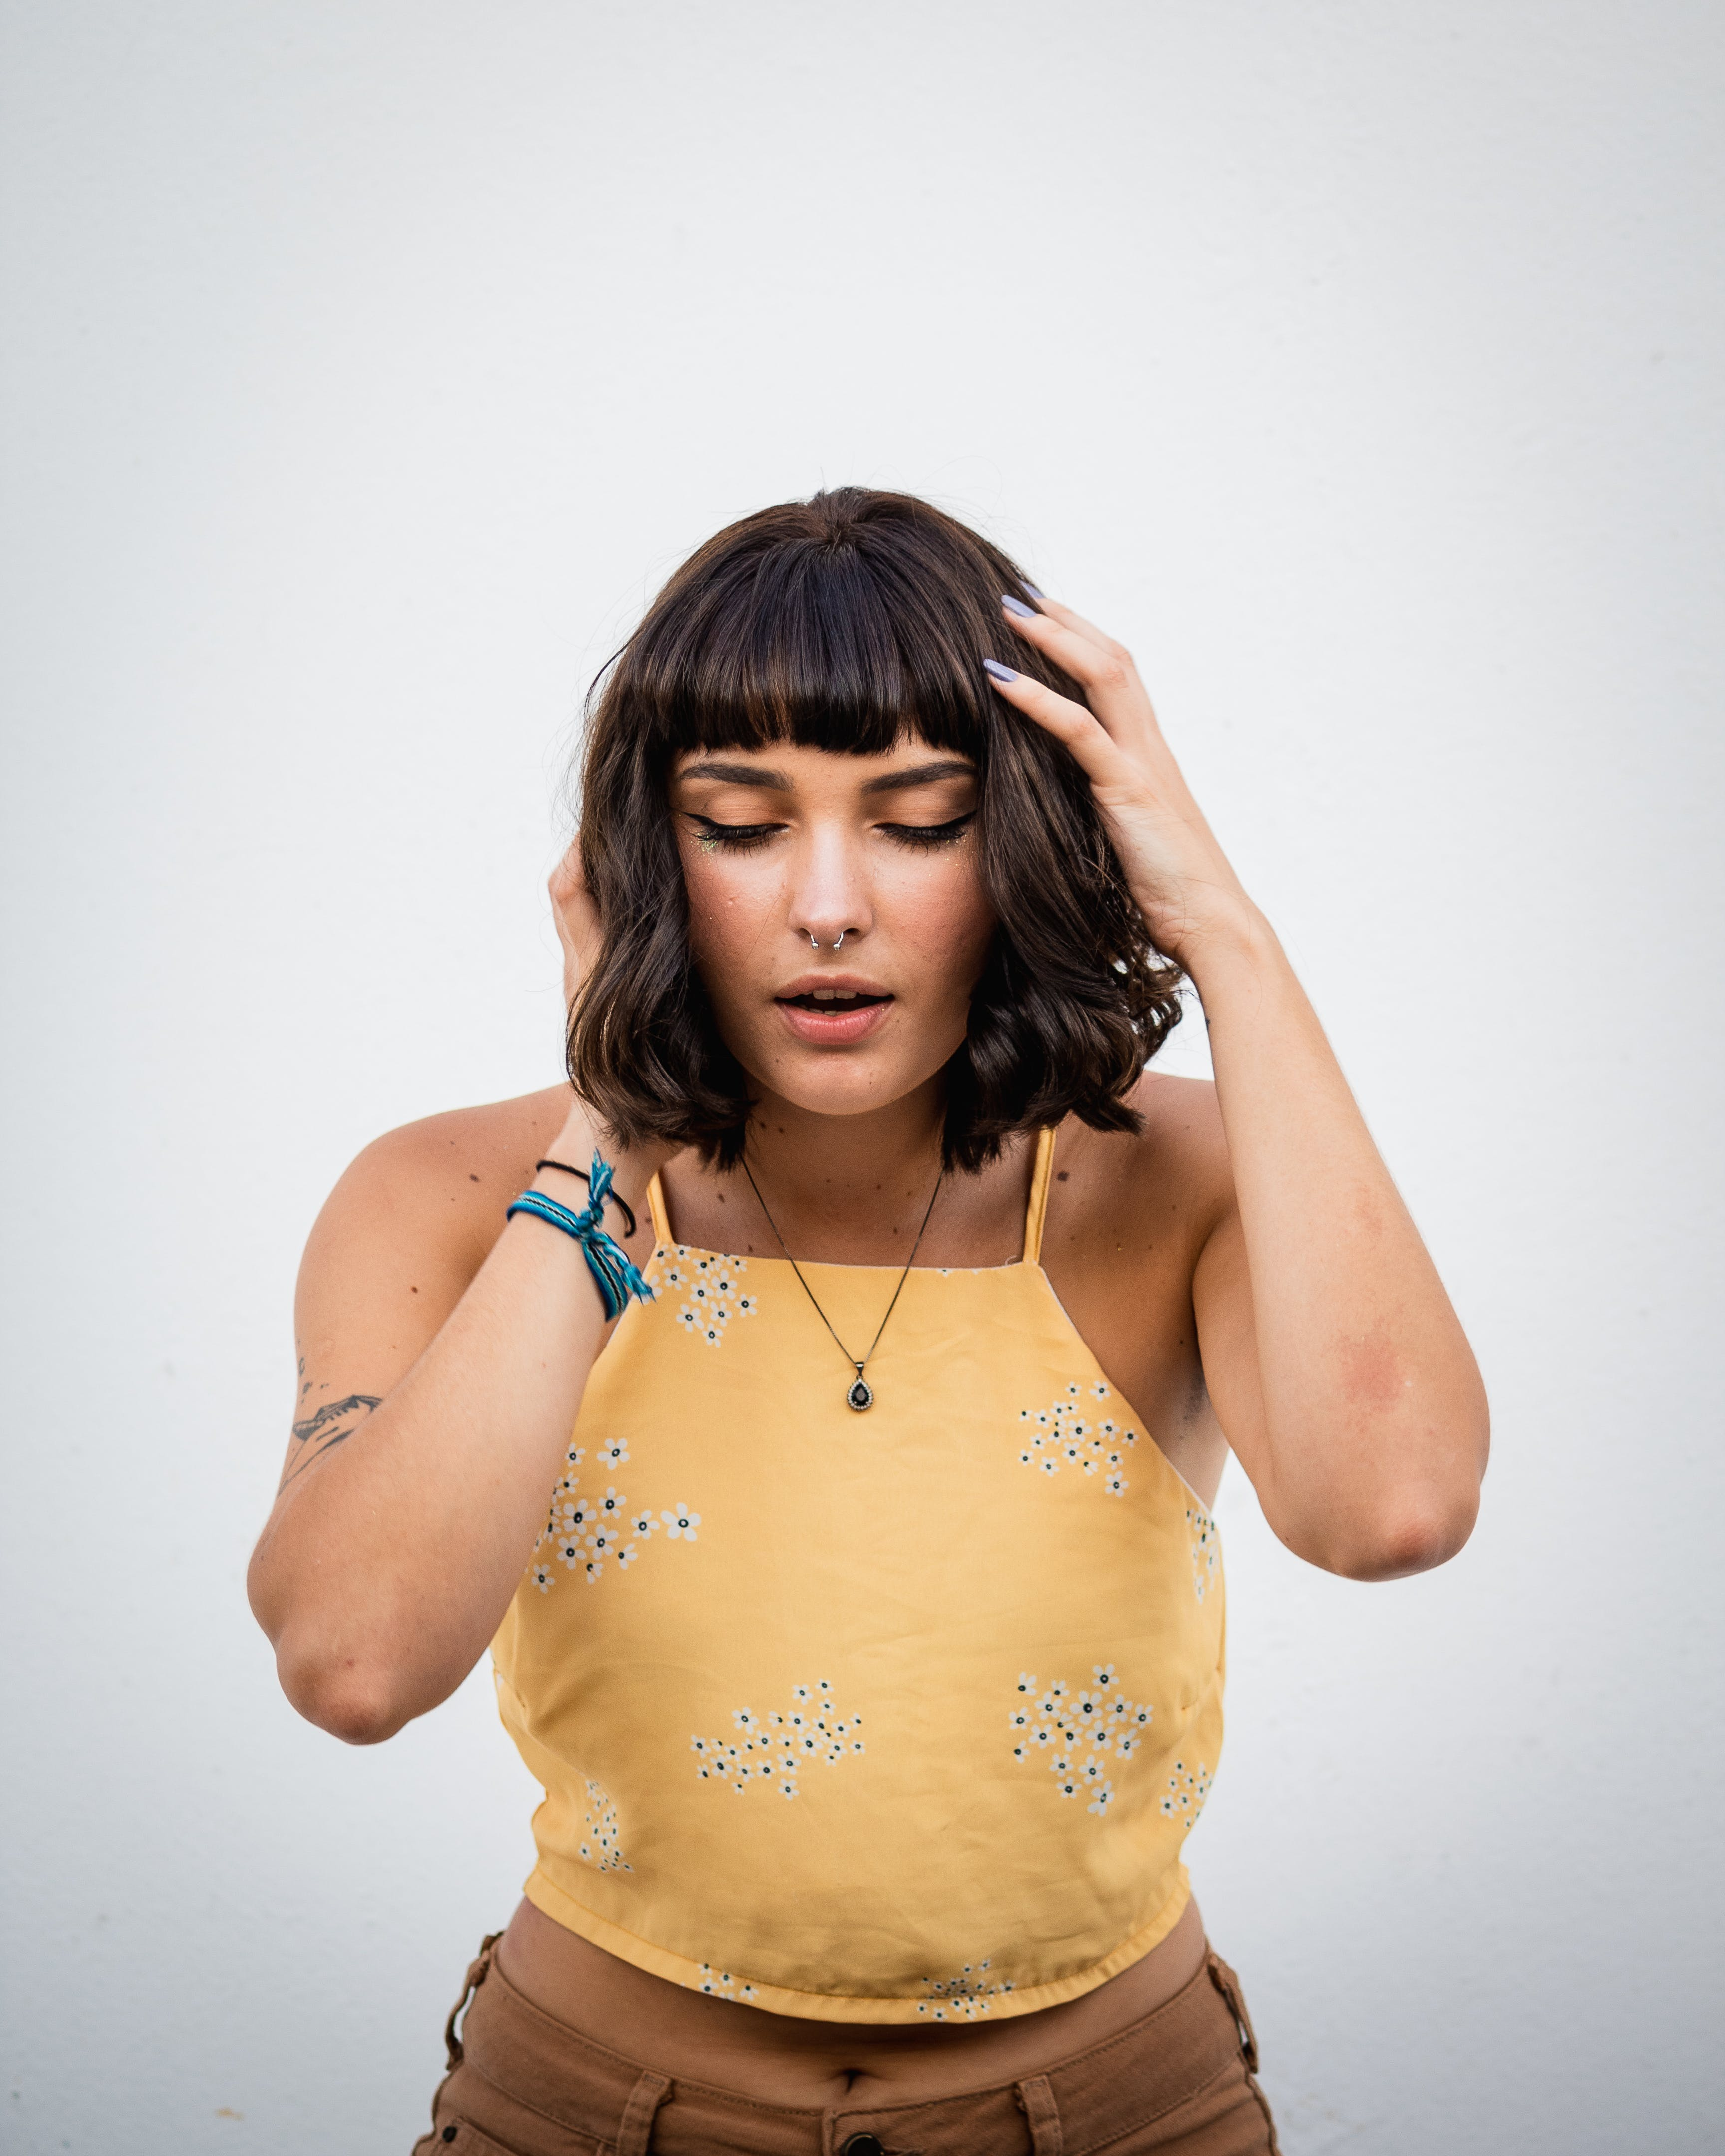 Photo of Woman in Yellow Crop Top Standing in Front of Wall With Her Eyes Closed